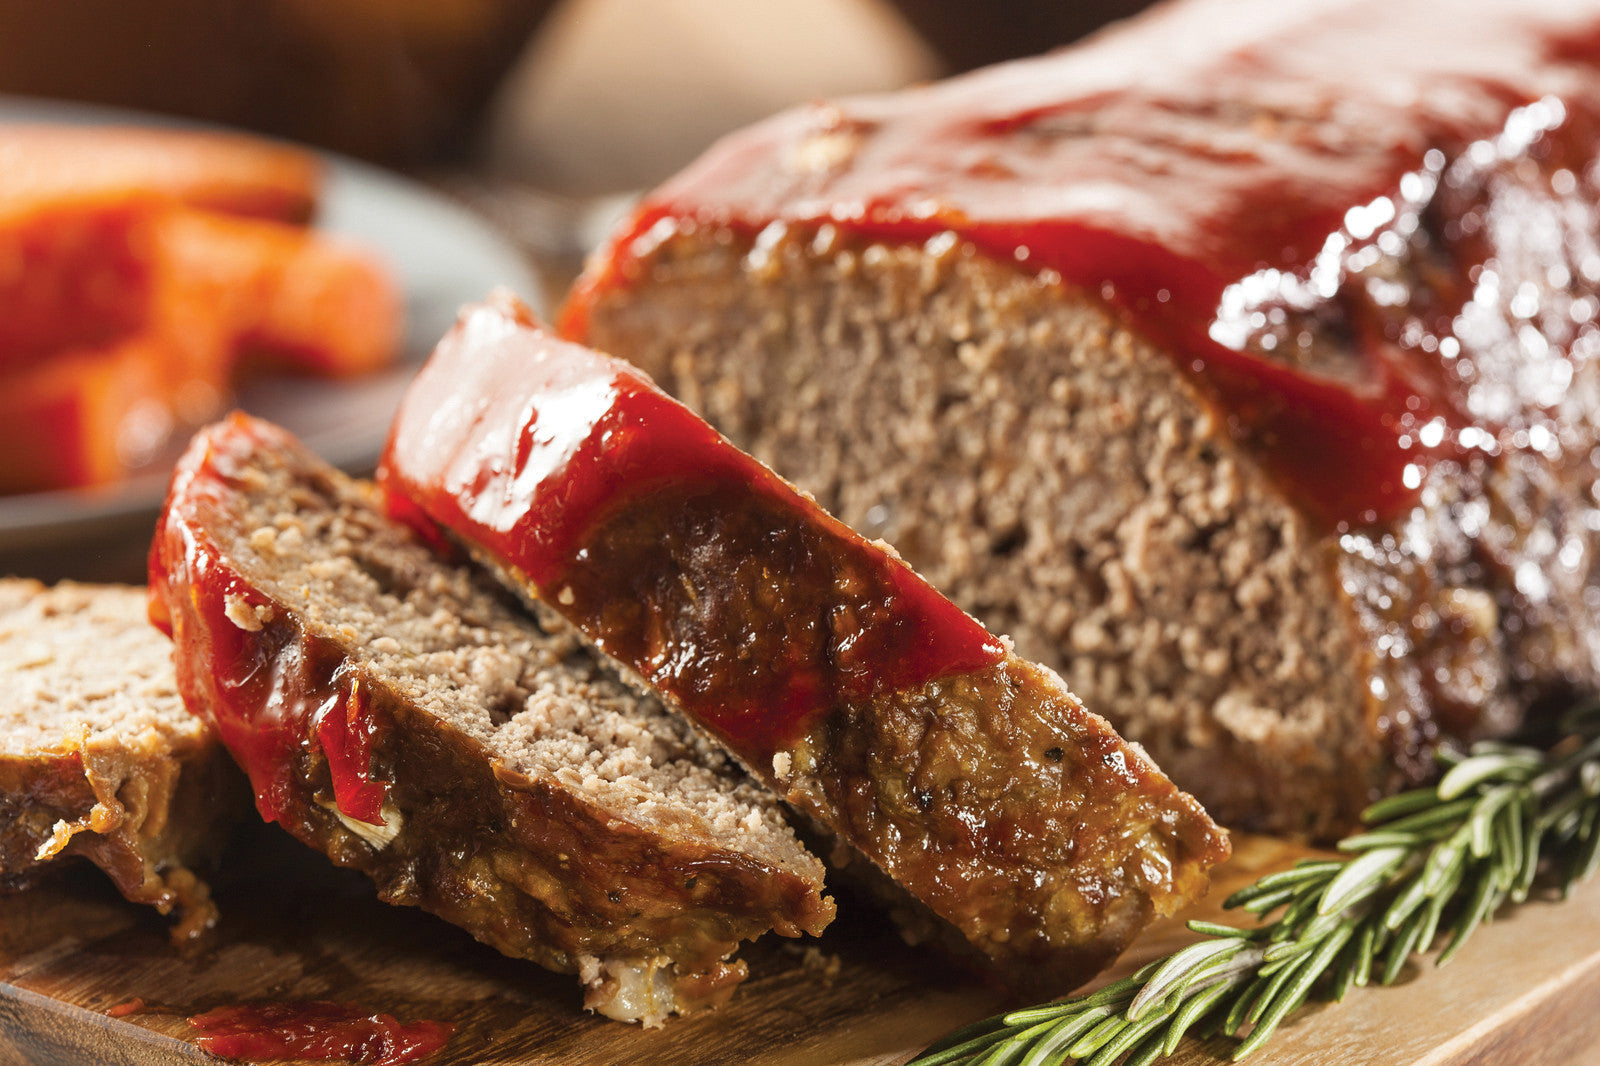 Gluten-Free Garlic Parmesan Meatloaf with Mustard Tomato Sauce